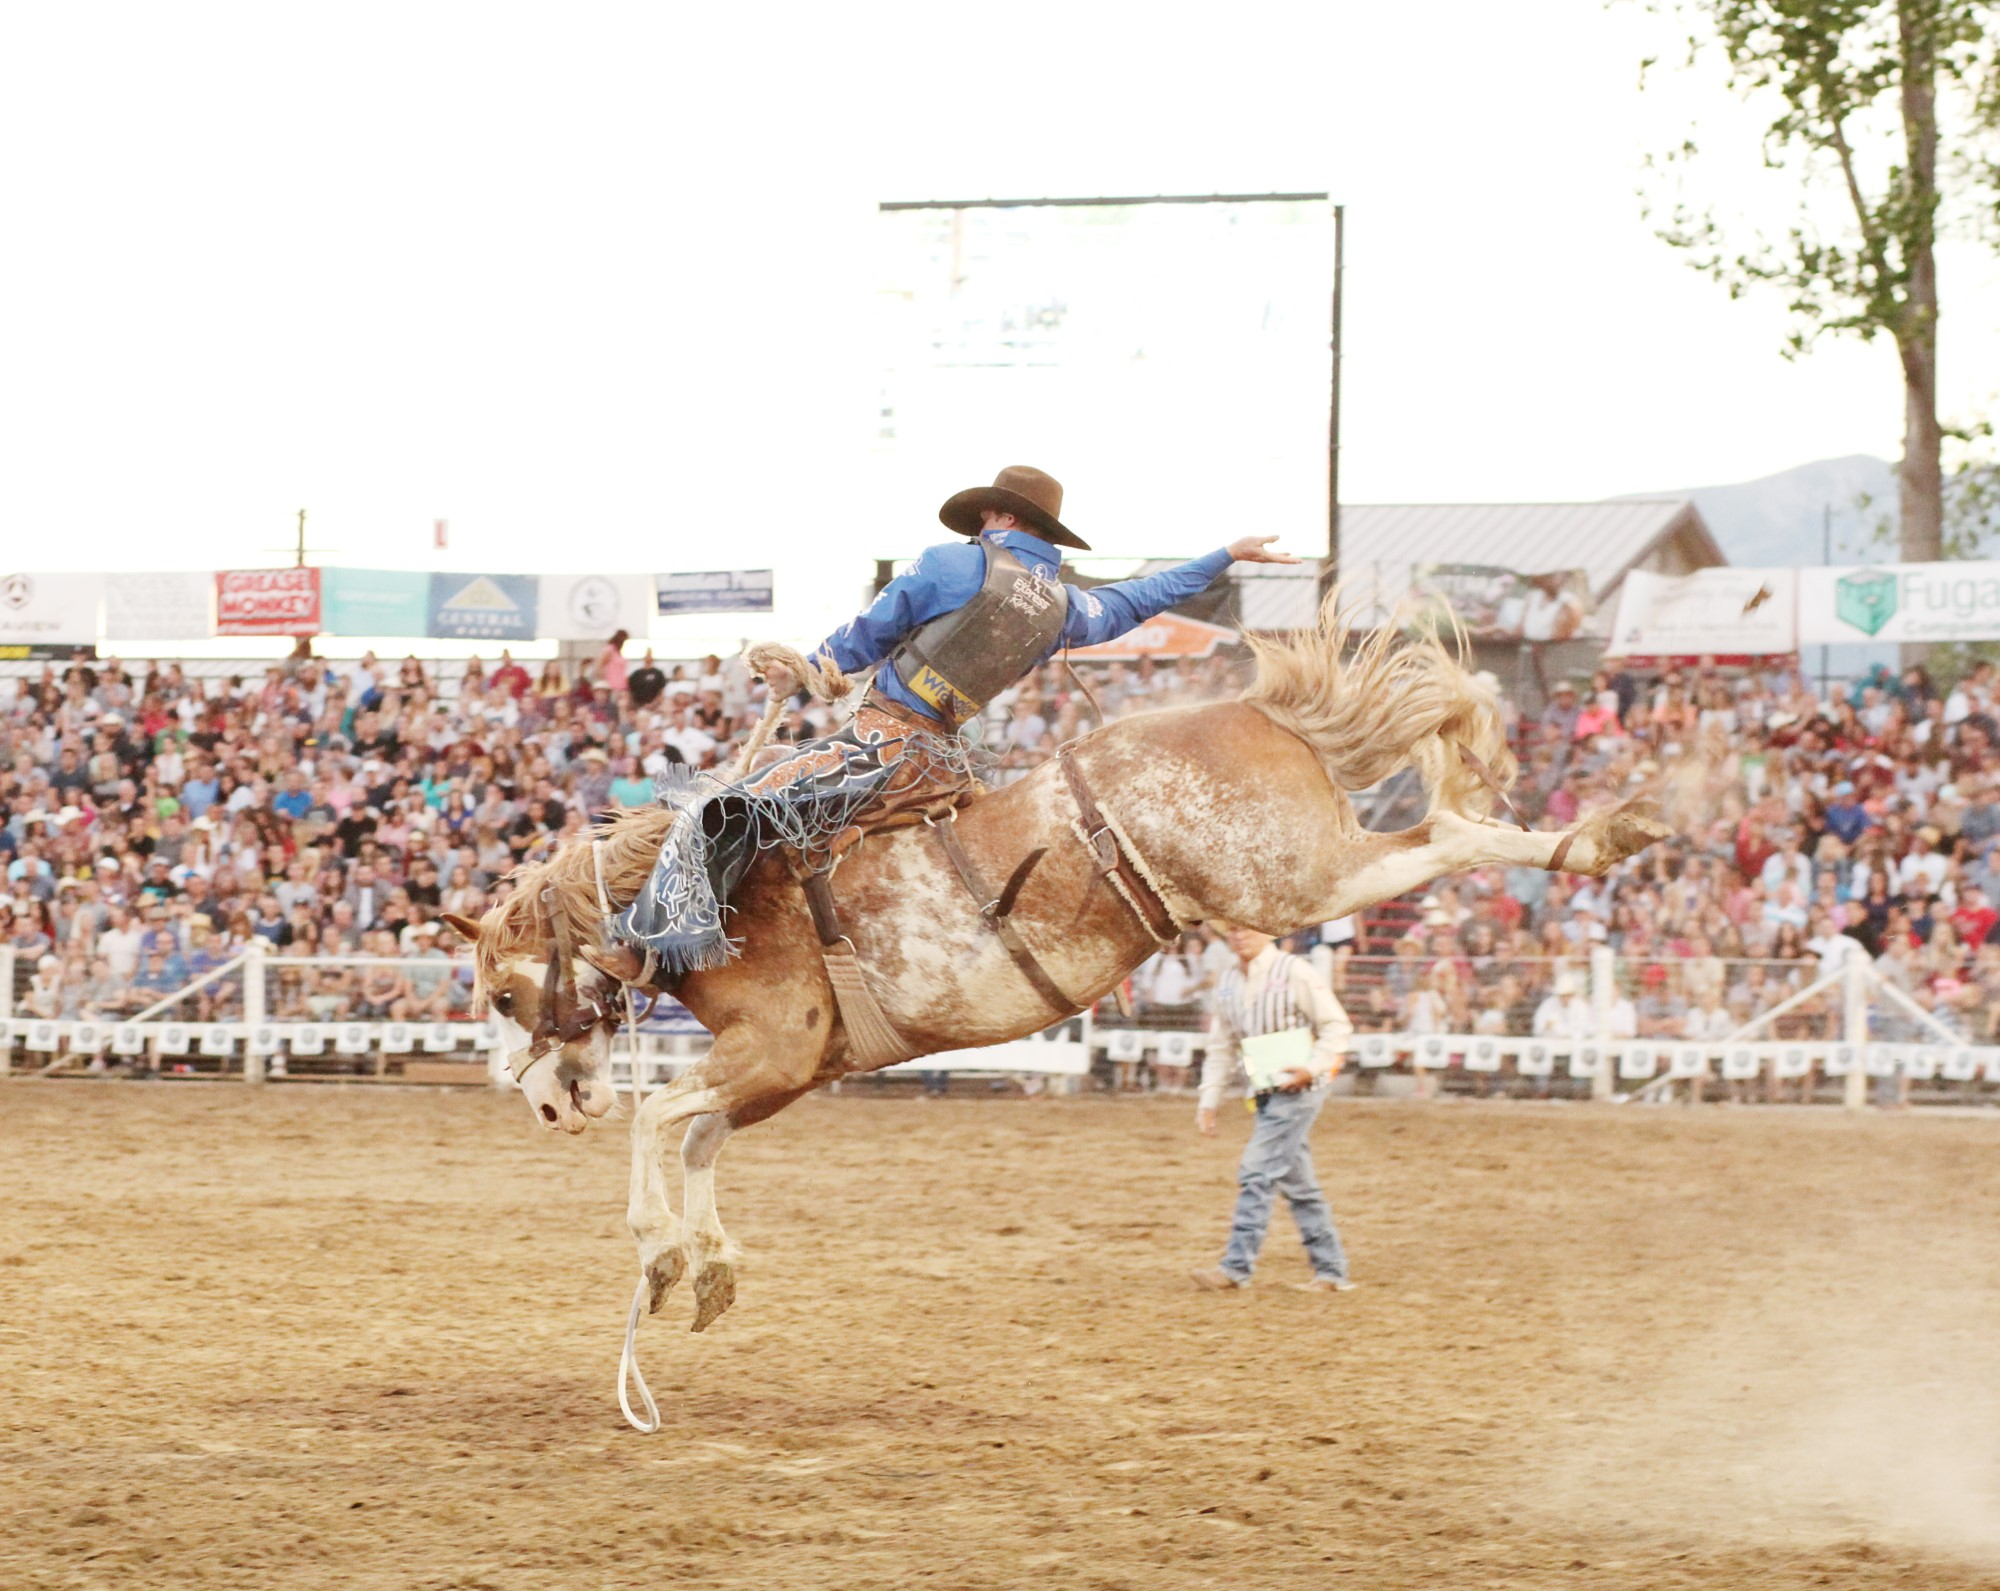 man on horse during rodeo